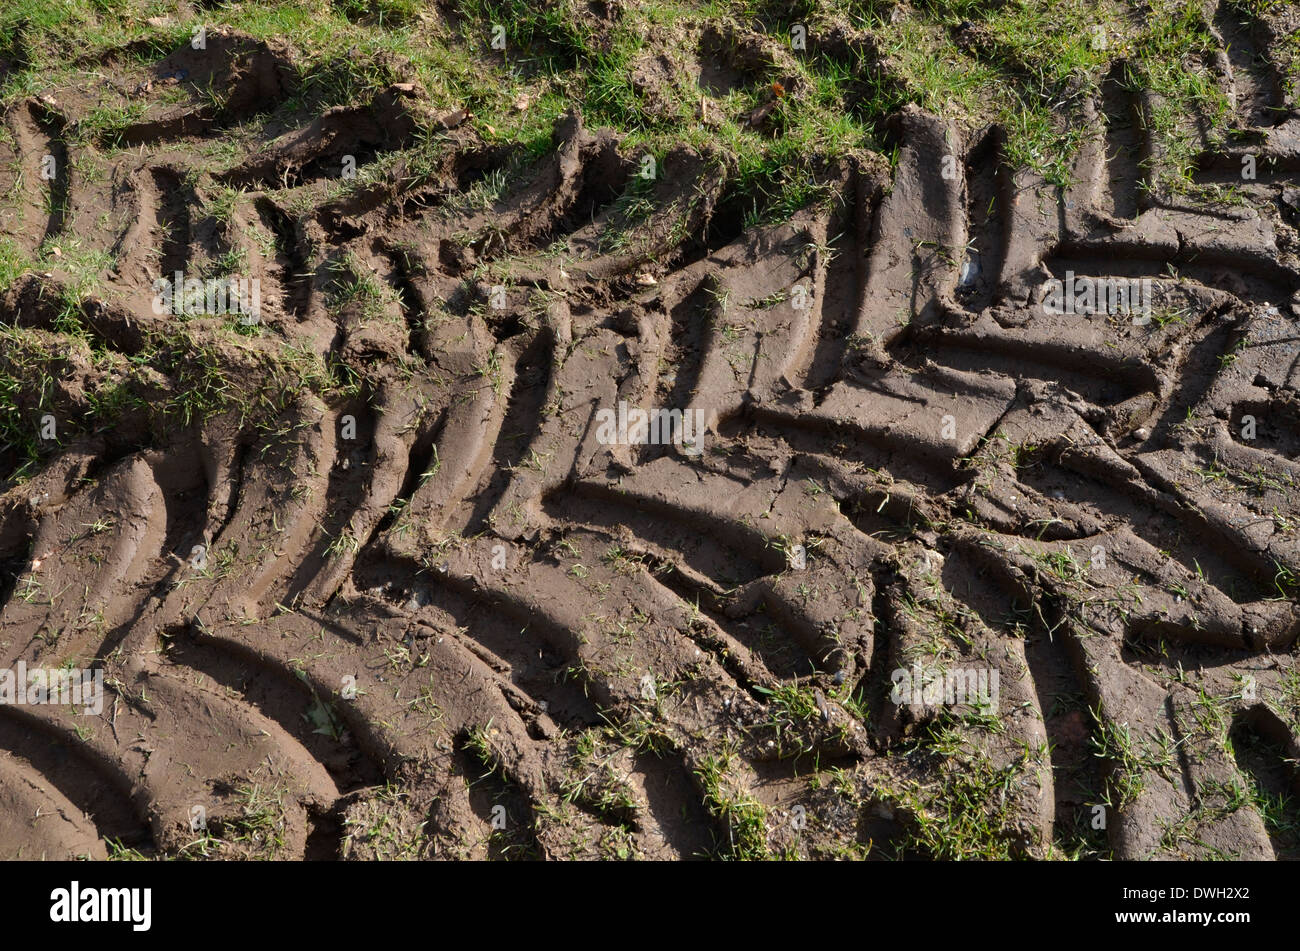 Tractor tyre tracks / impressions in field. - Stock Image